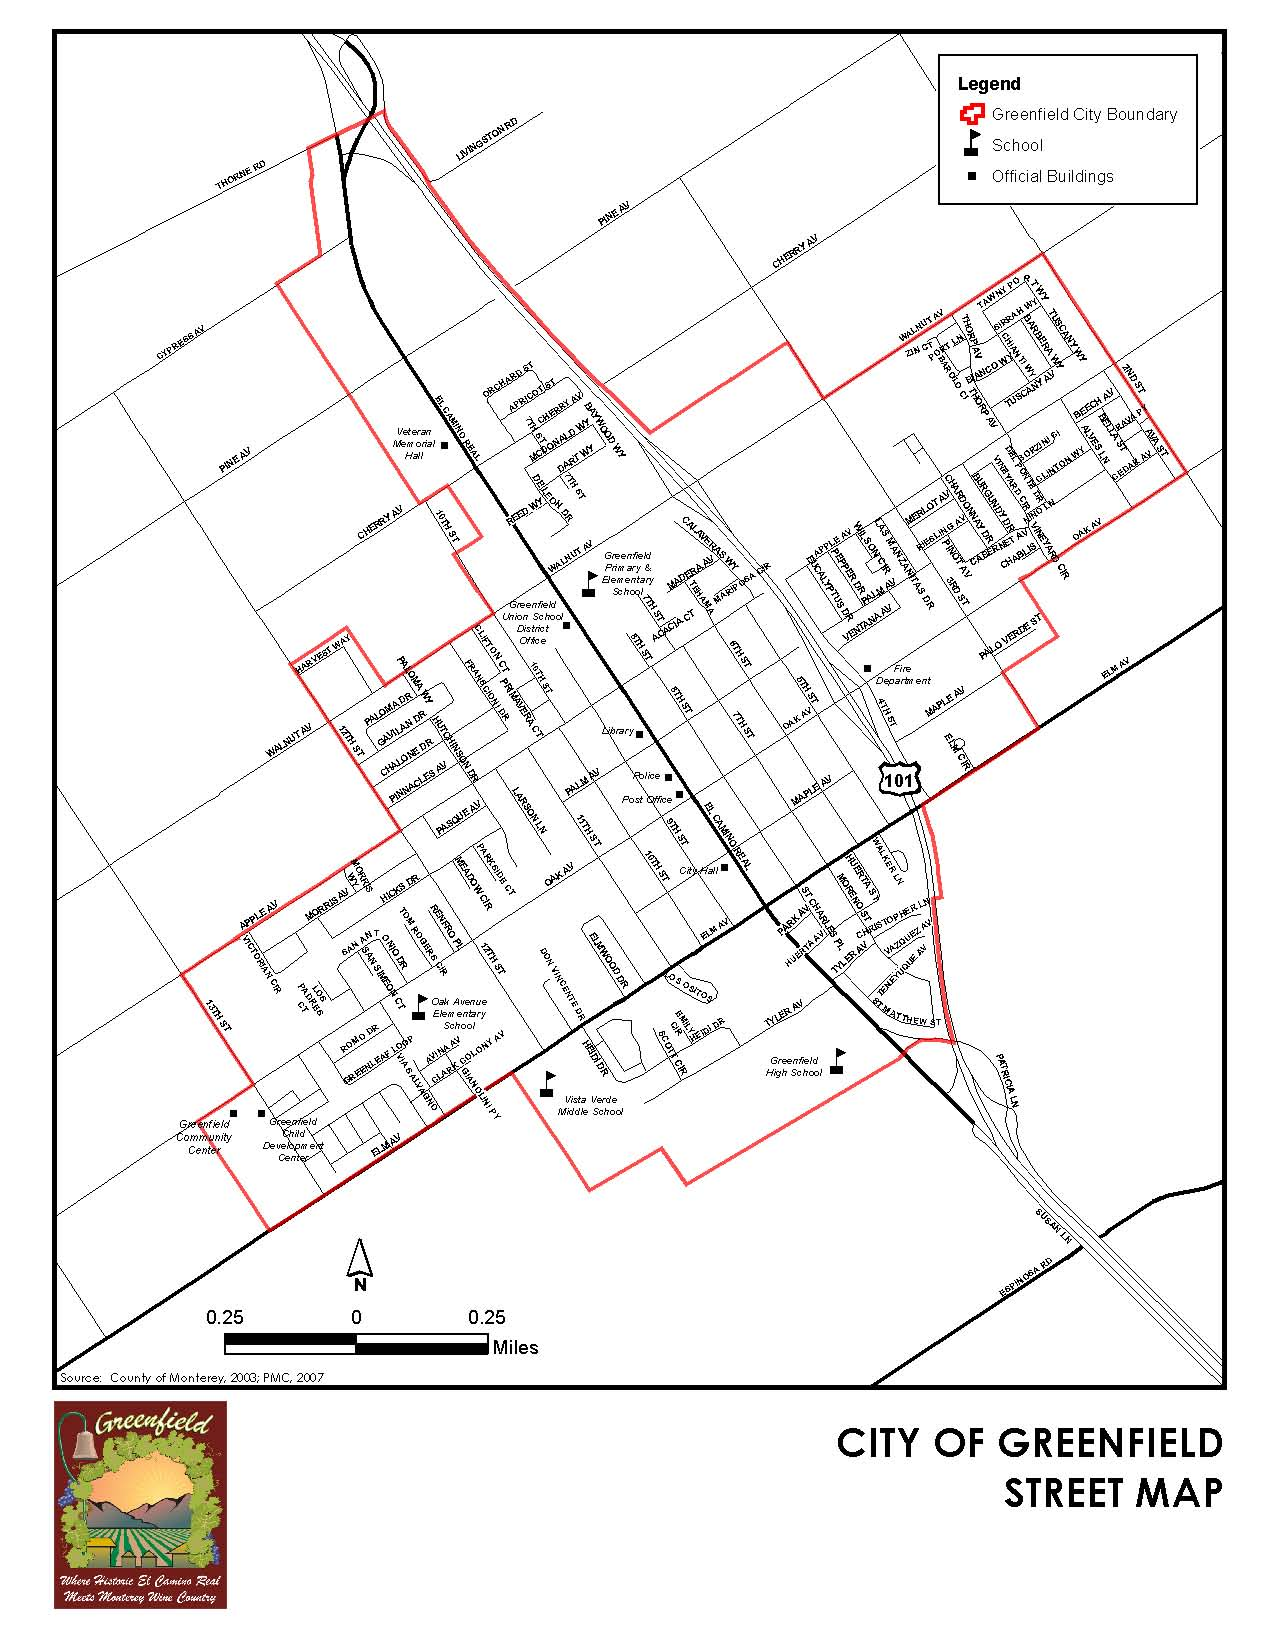 A street map of Greenfield.